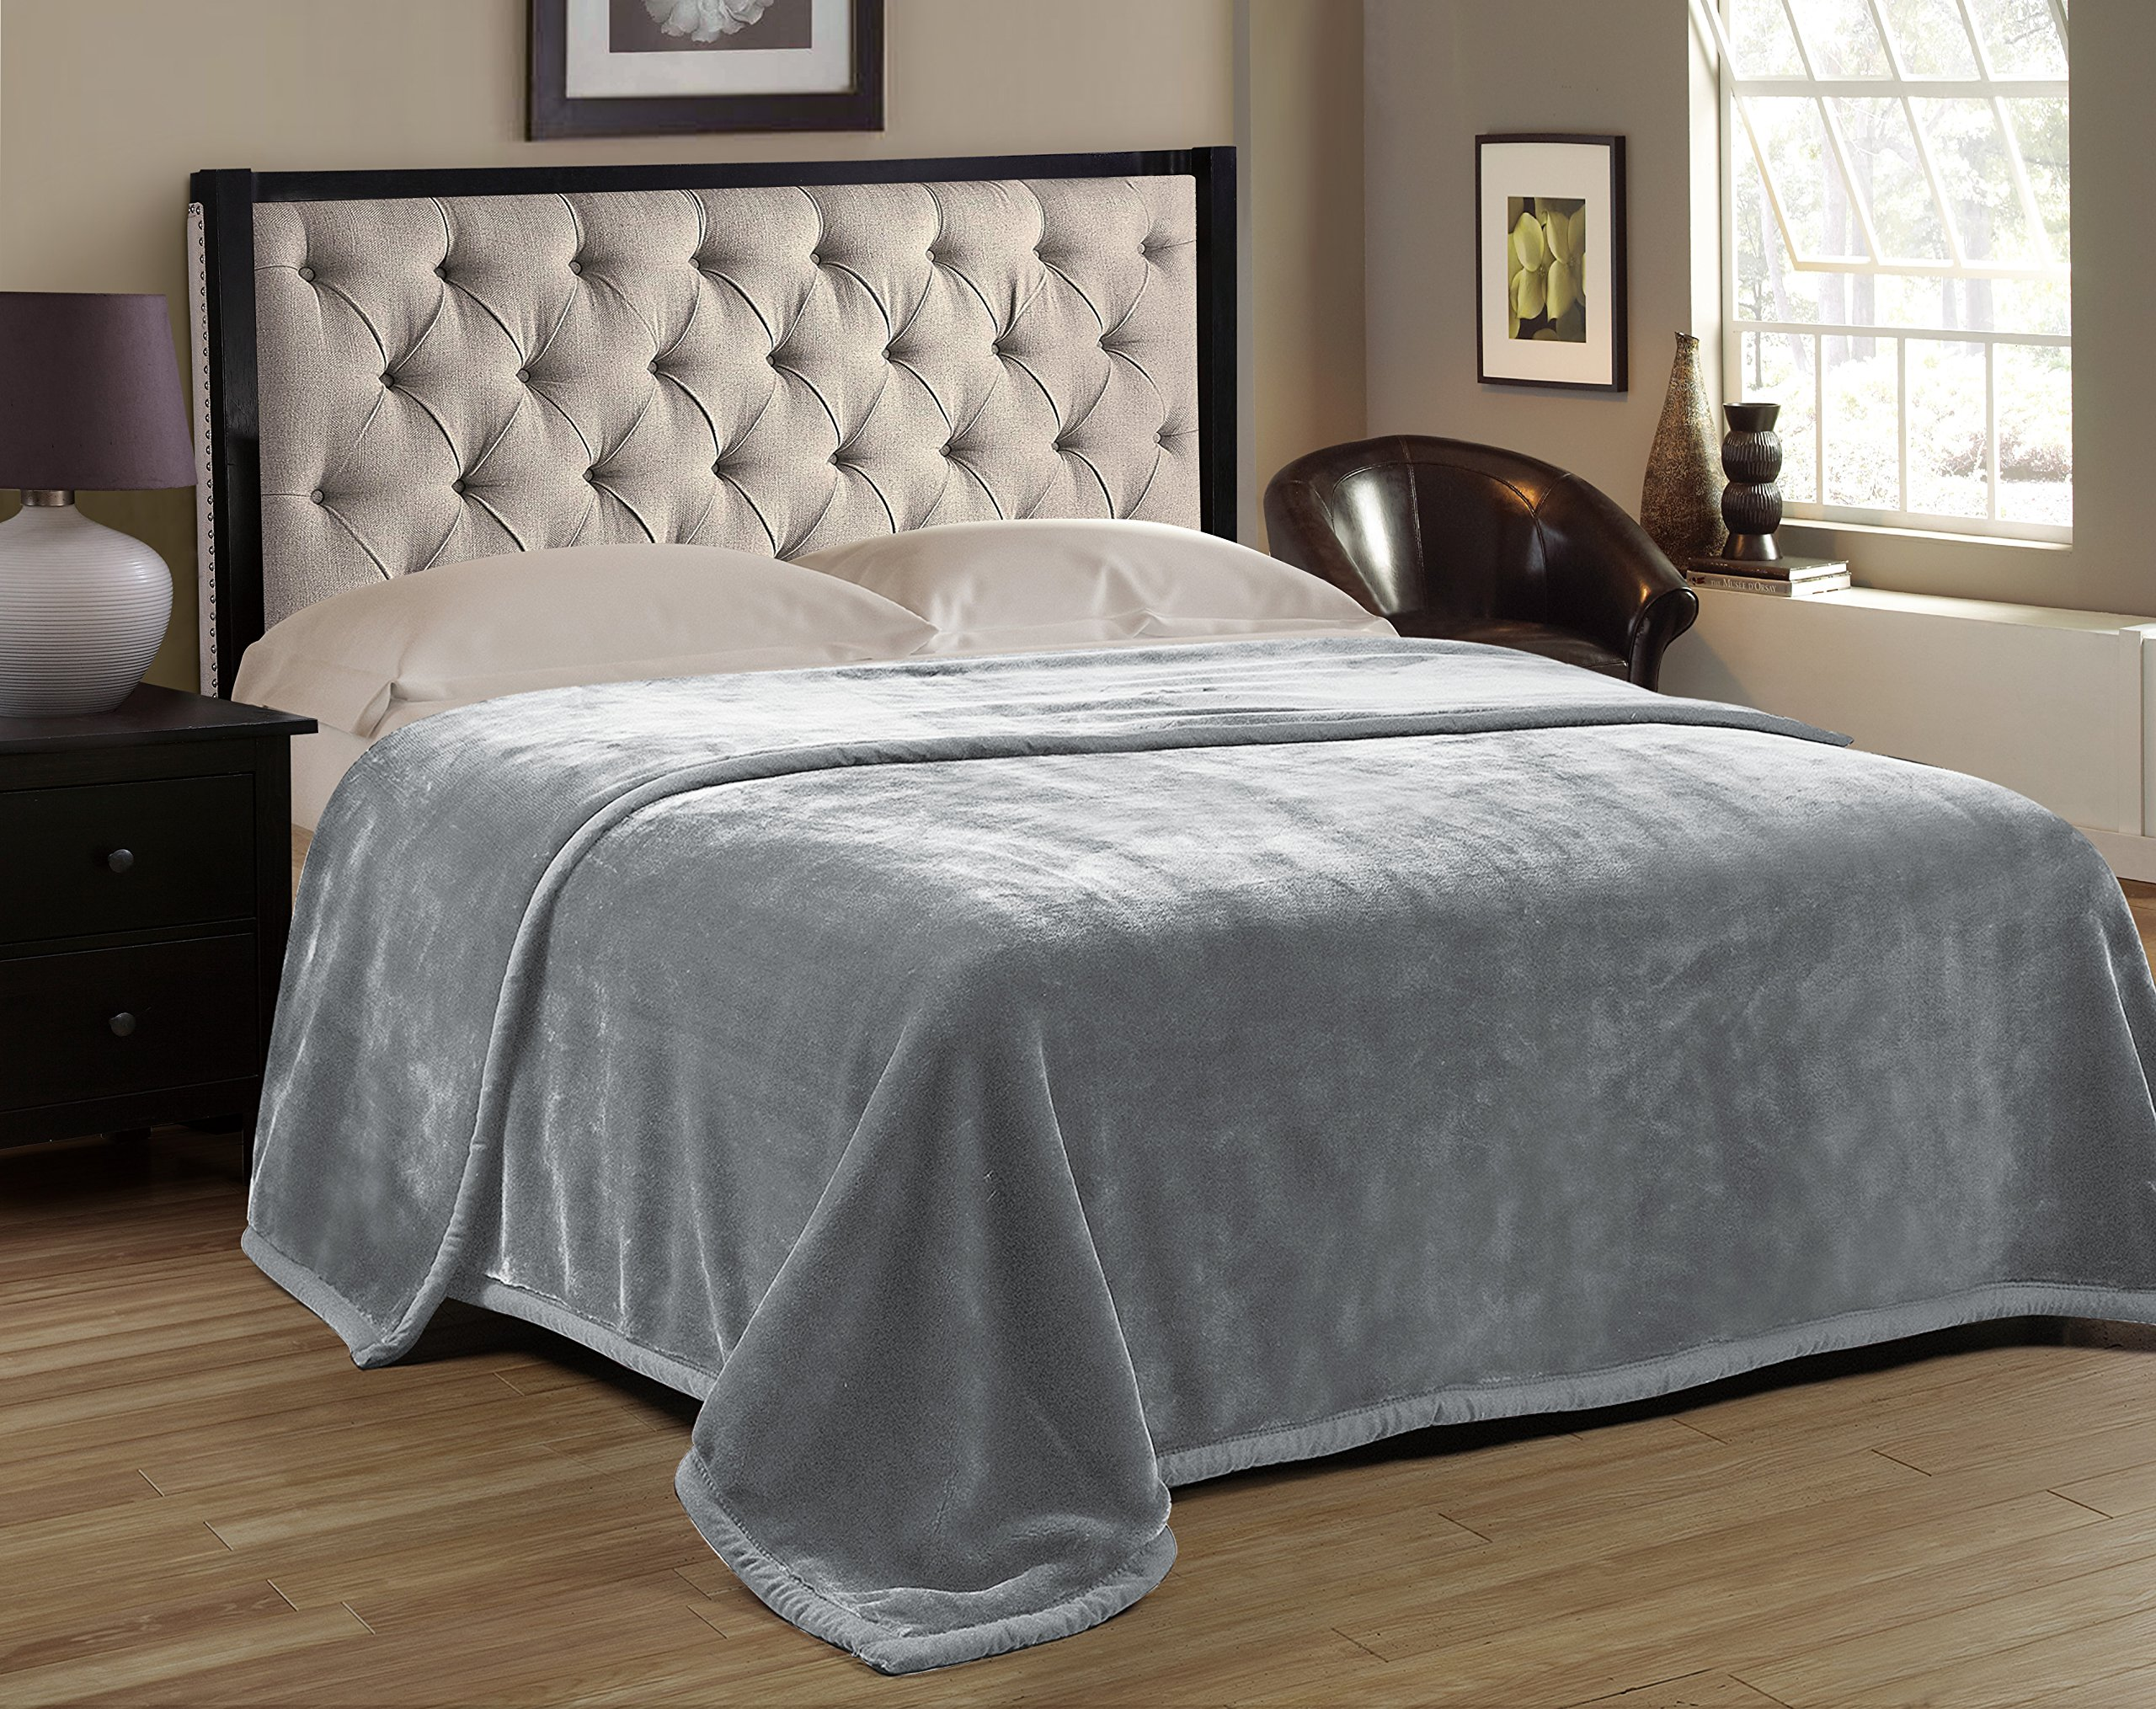 HIG Premium Thick Blanket with Double Layer Reversible Plush Raschel Blanket Gray Solid Color - Supersoft, Warm, Silky, Hypoallergenic, Fade resistant in Queen Size (Queen, Gray)